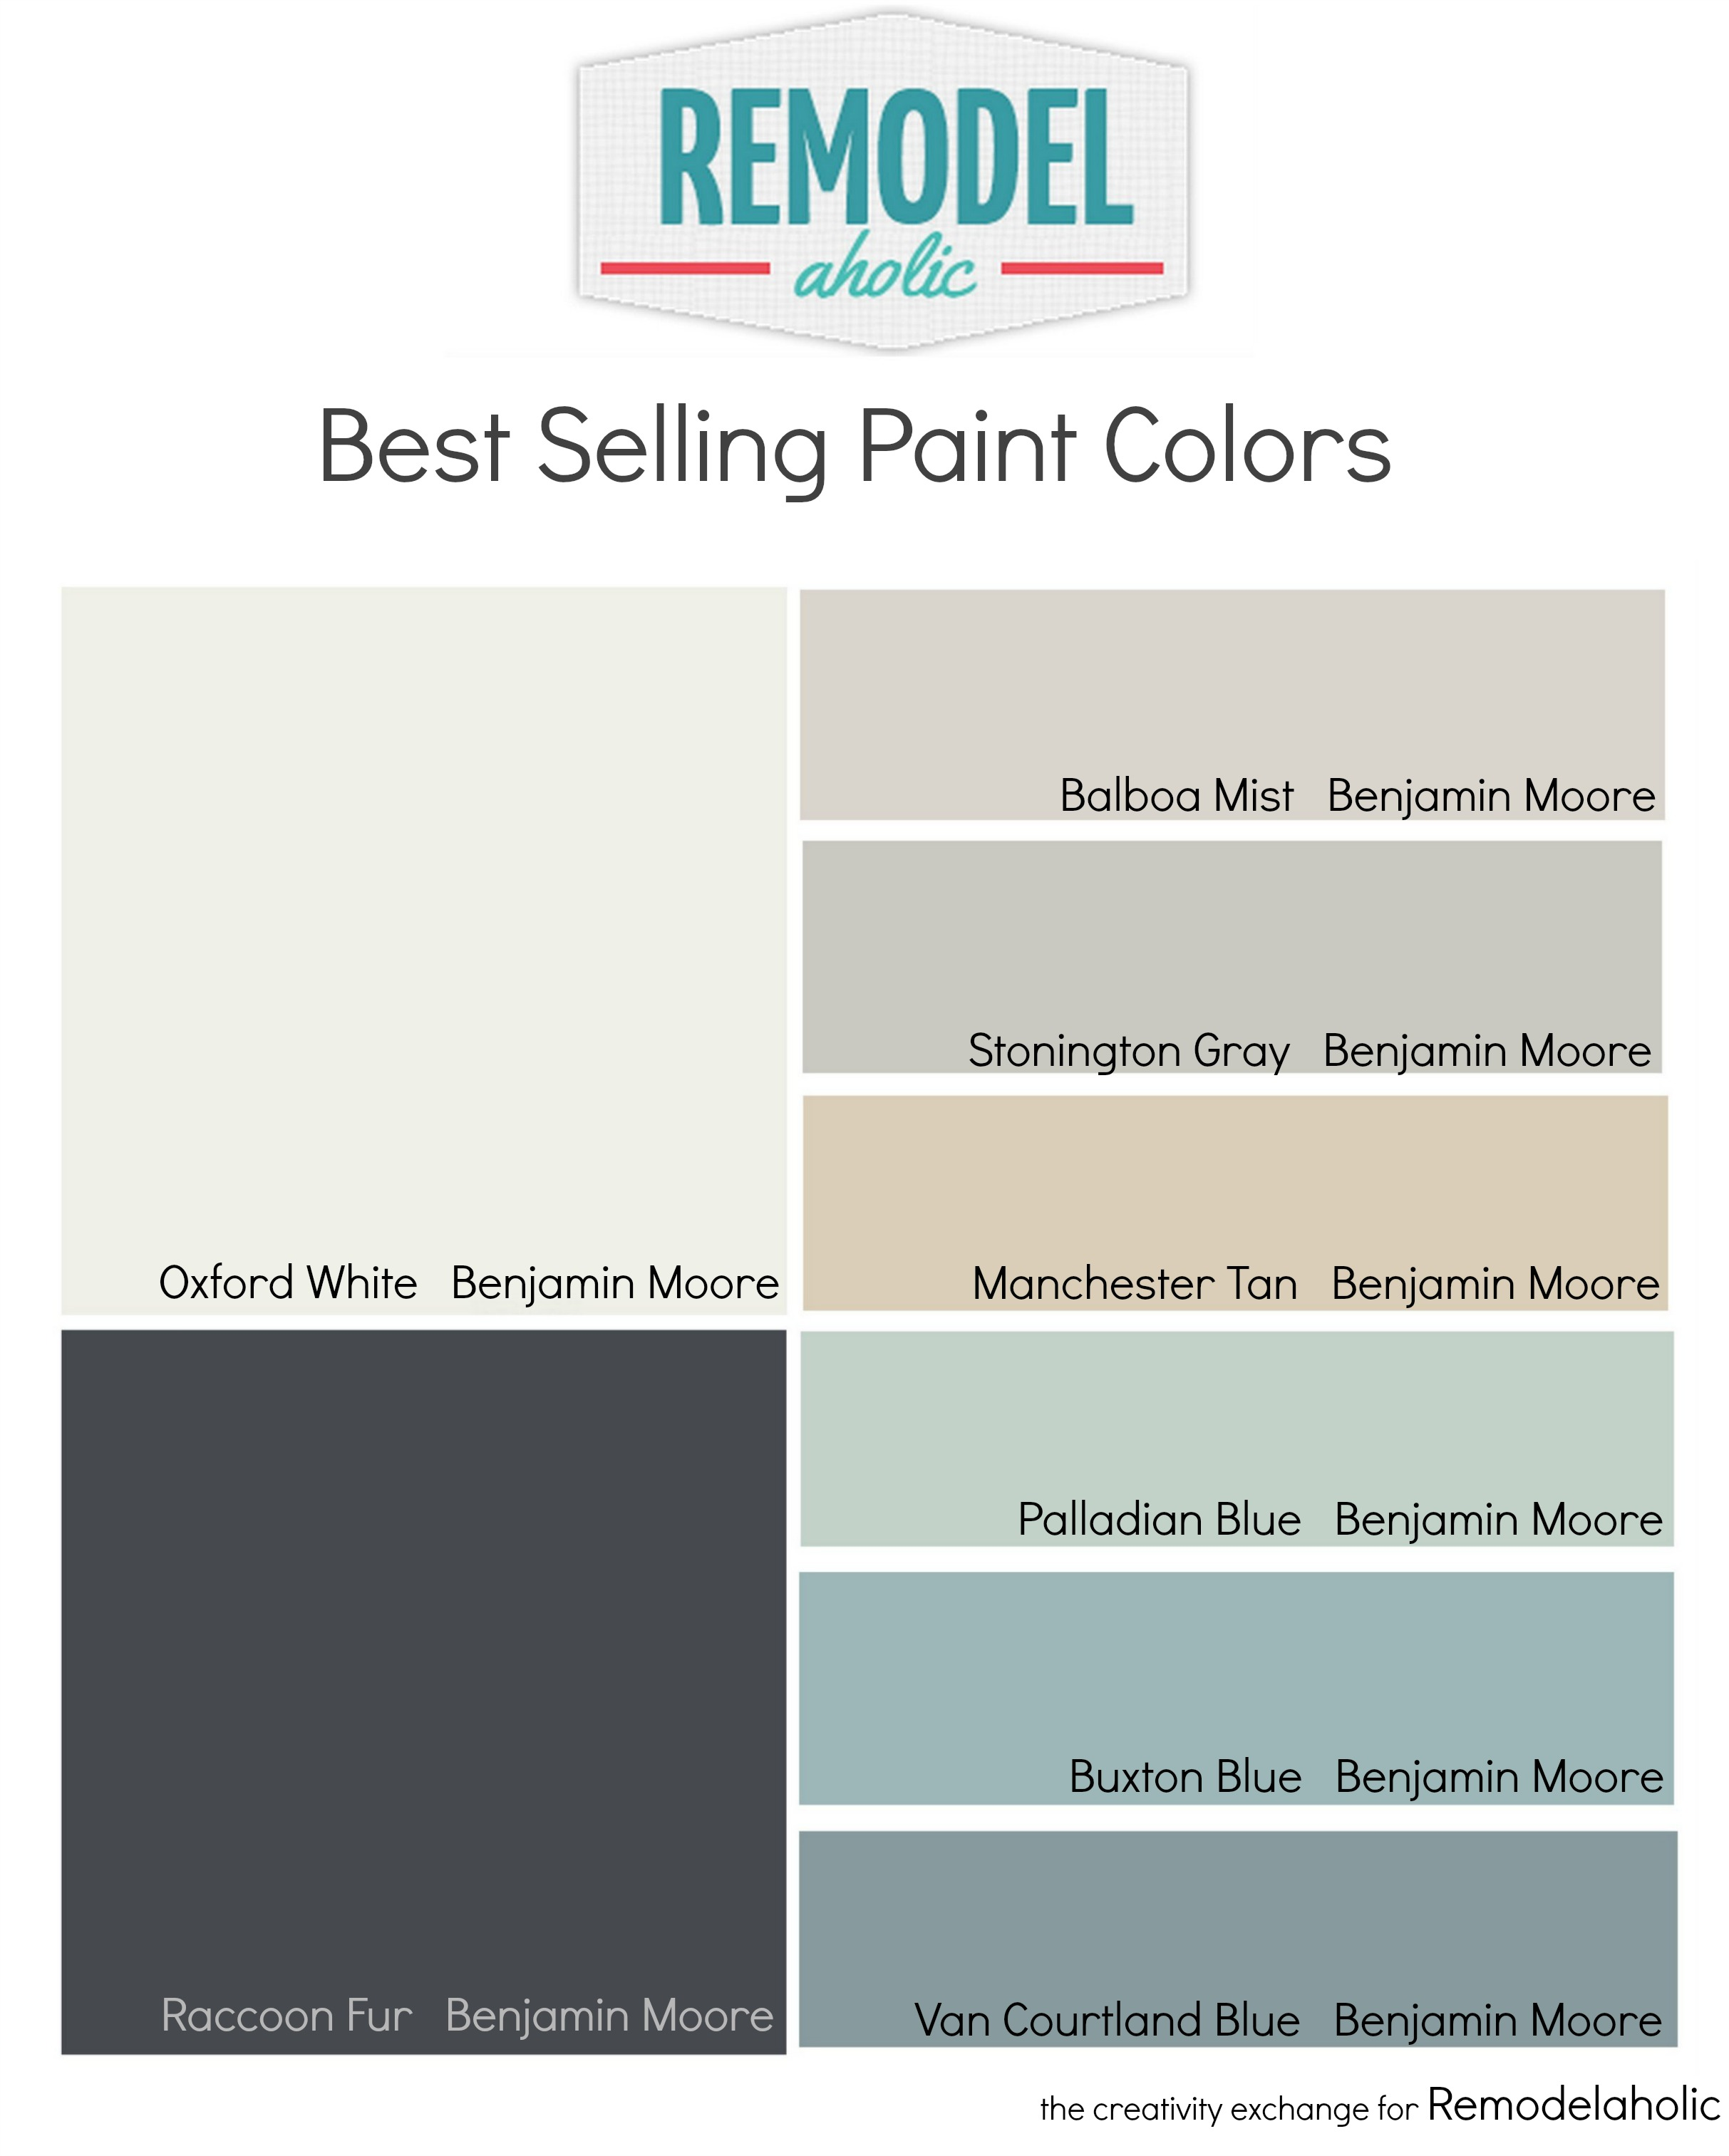 Most Popular And Best Selling Paint Colors Remodelaholic Bloglovin